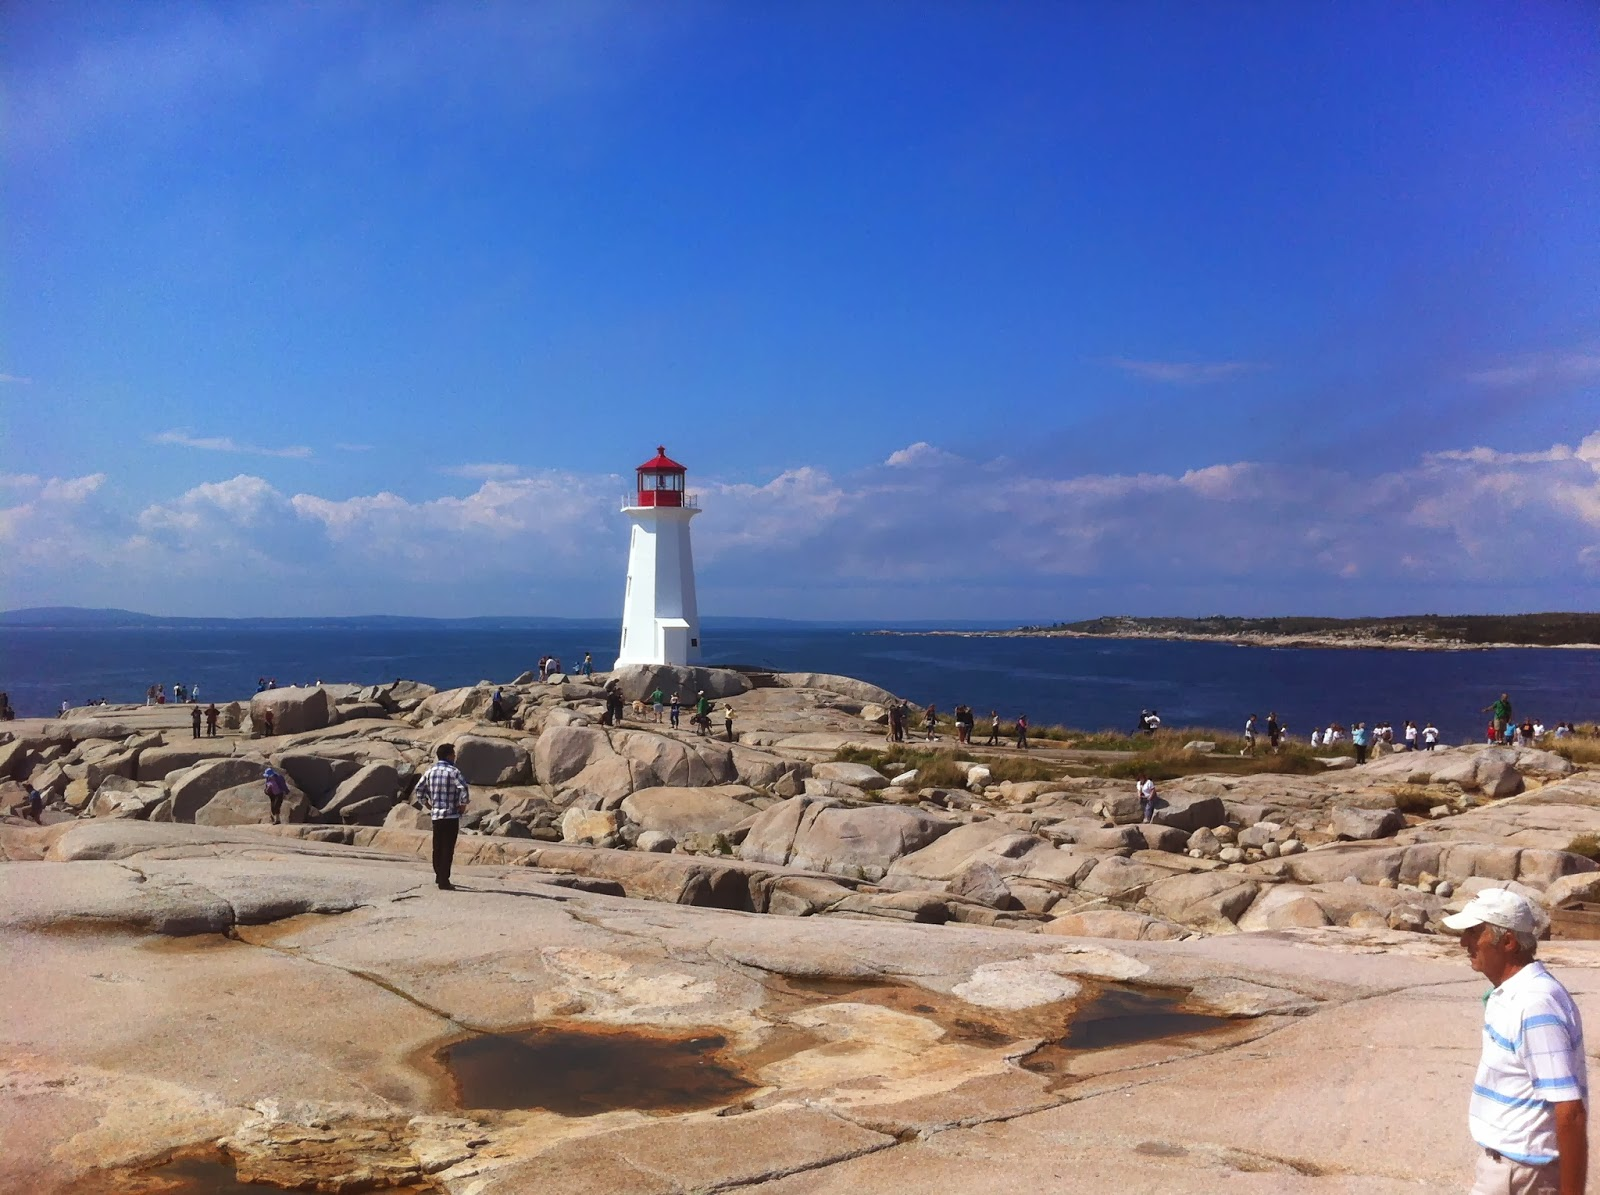 peggy's cove yo!